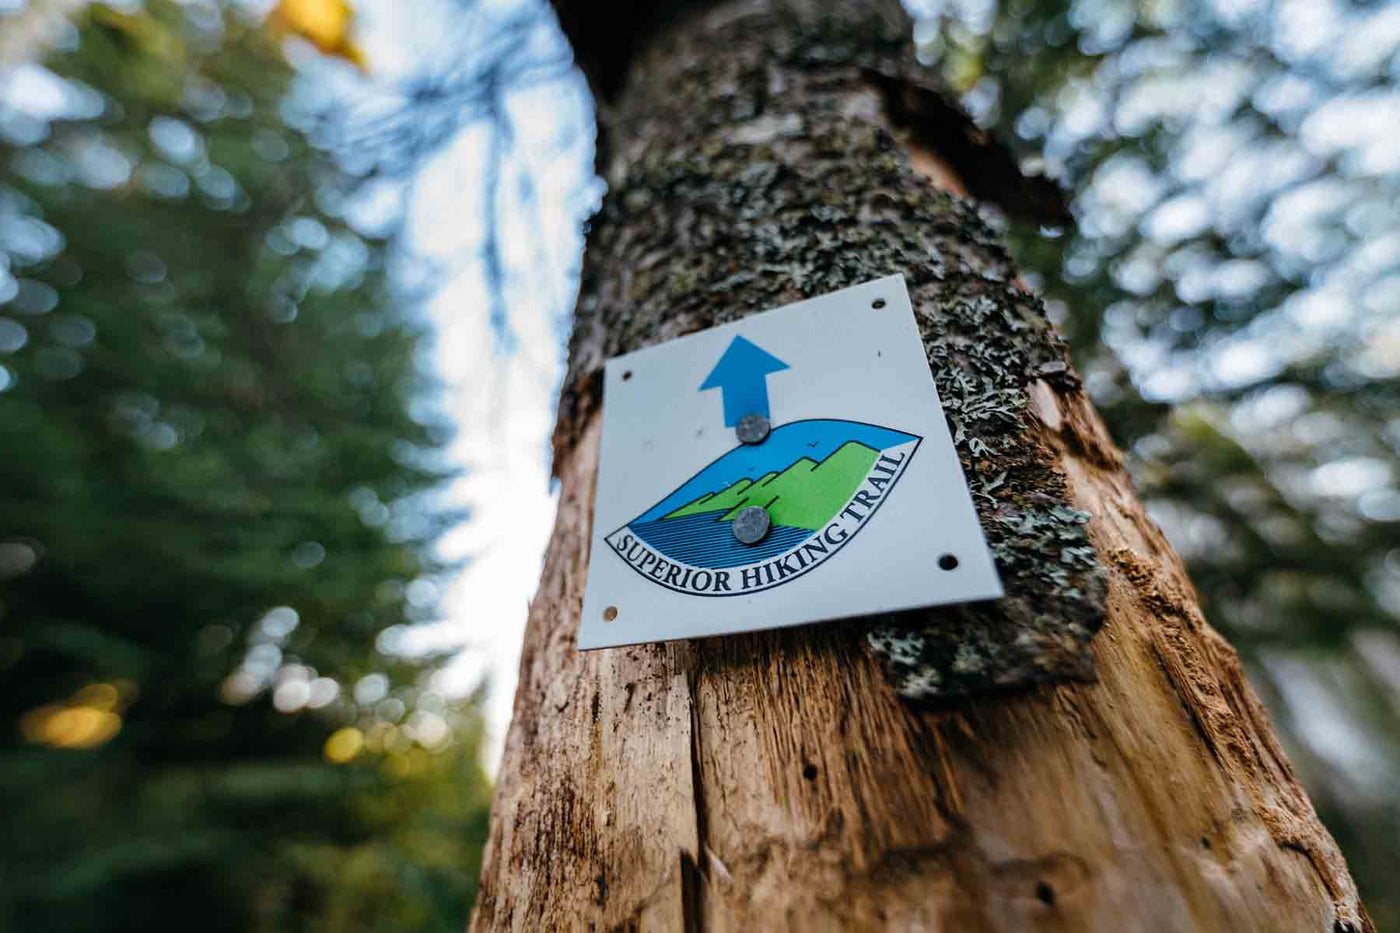 Hike of the Week: Superior Hiking Trail - Section 6